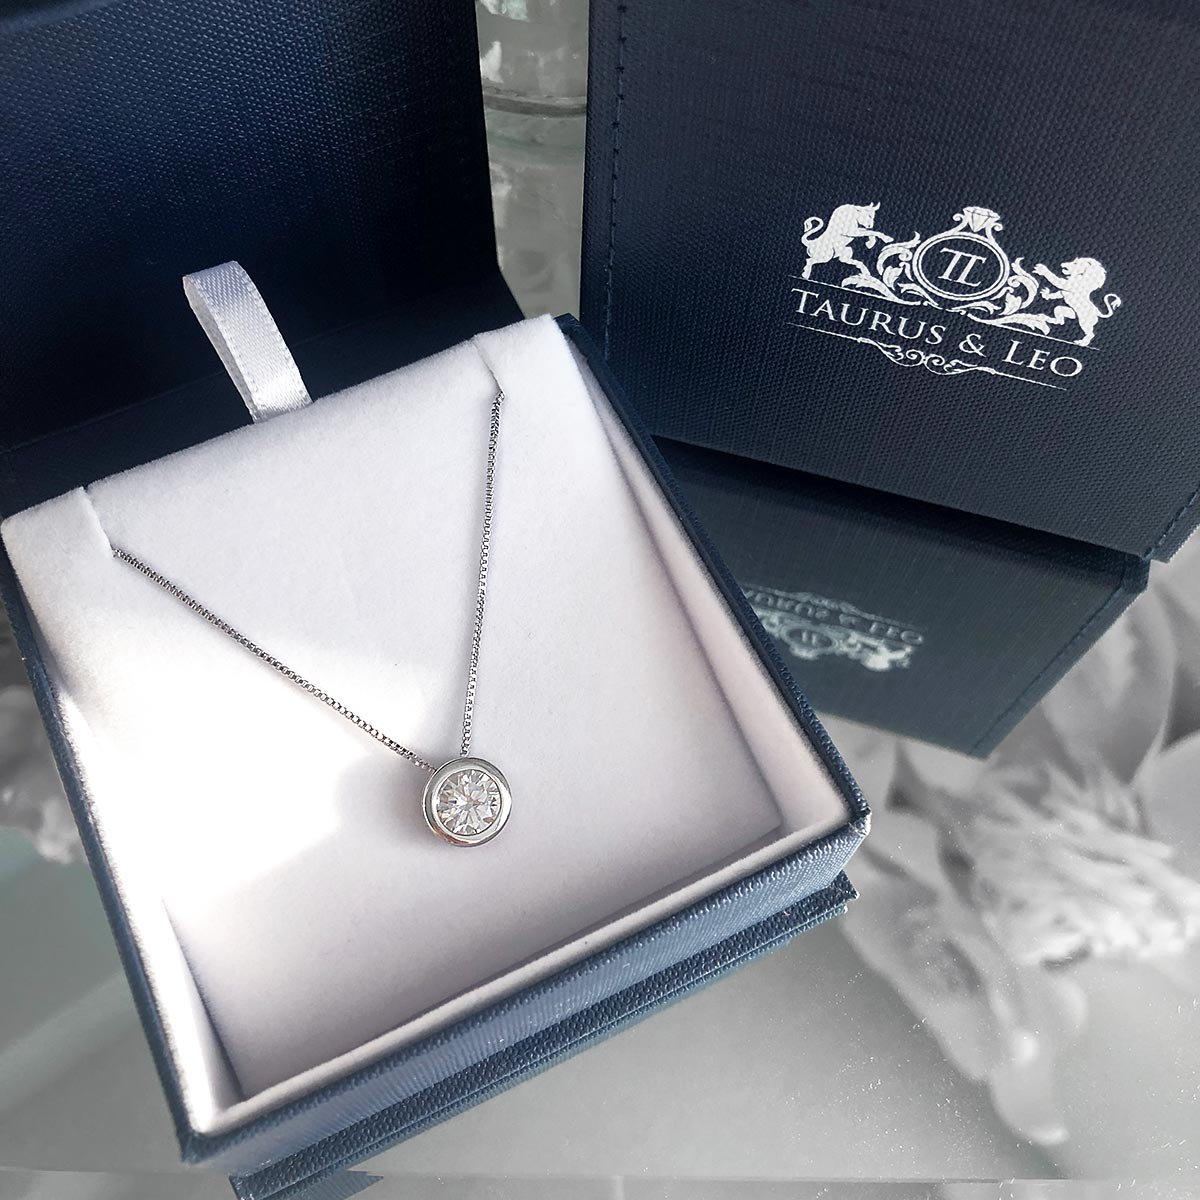 necklace, silver necklace, charm necklace, sterling silver necklace, box link chain, white stone necklace